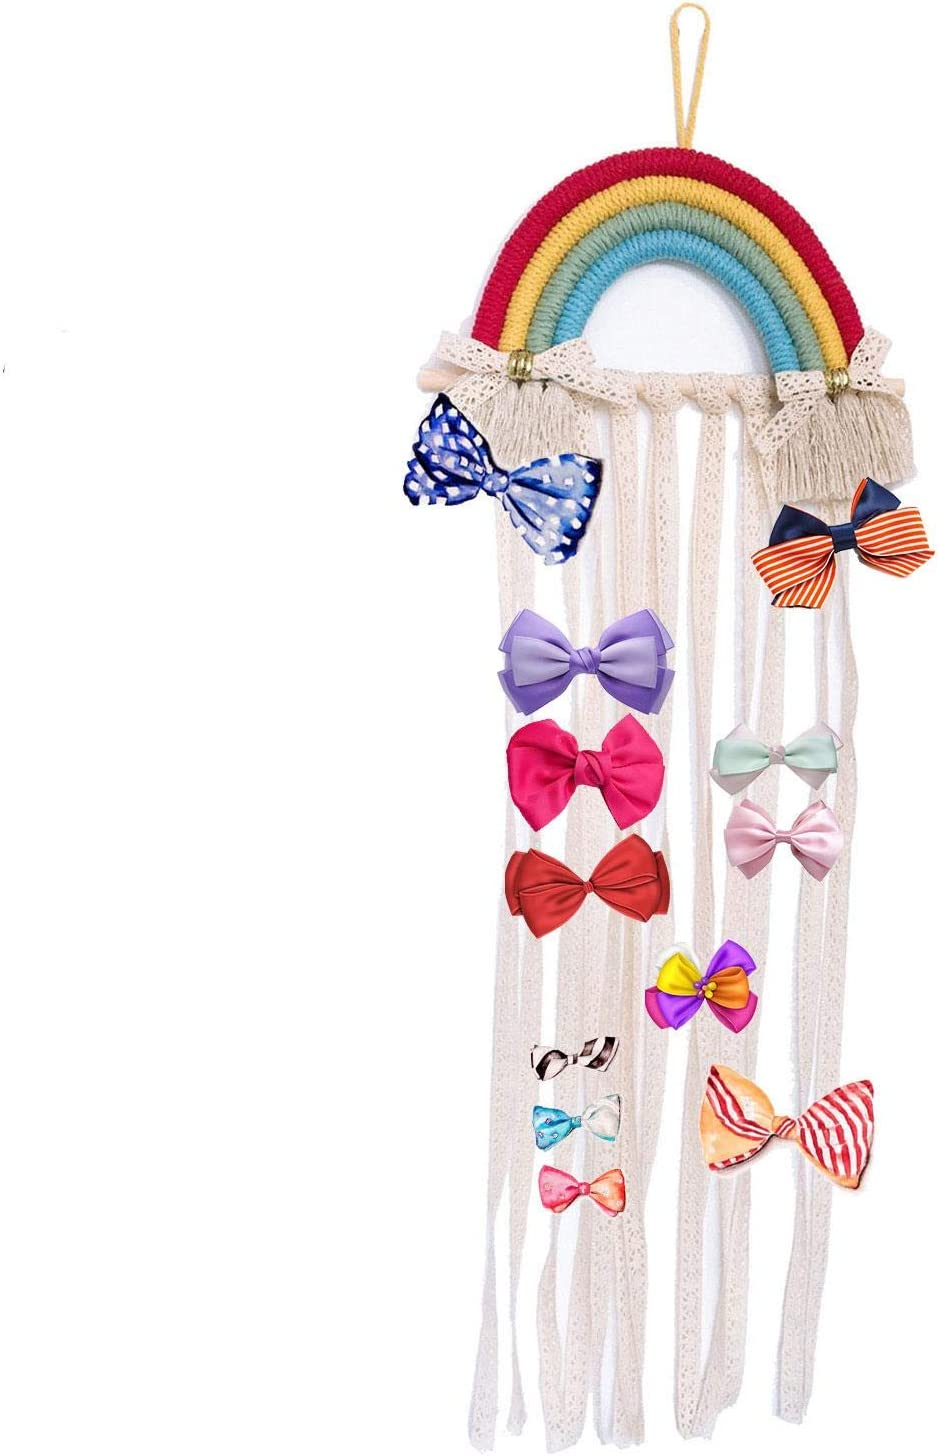 DTT Hair Bow Holder Organizer for Childrens Branded goods Hairpin Year-end annual account WallRainbow